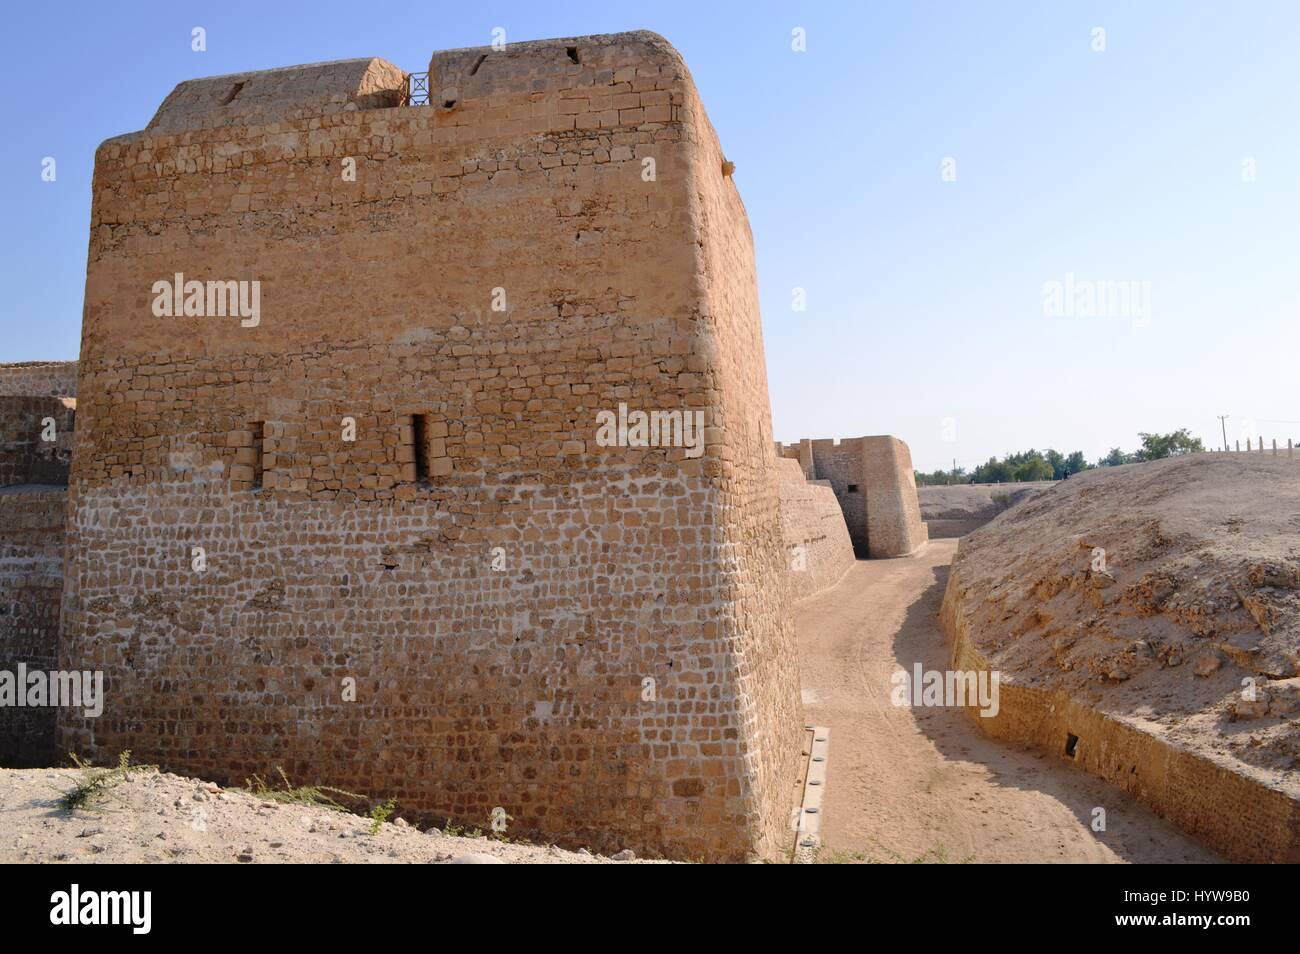 Exterior structure photos of the Bahrain Fort (Qalat al-Bahrain) at Al Qalah, Bahrain, in the Middle East. - Stock Image